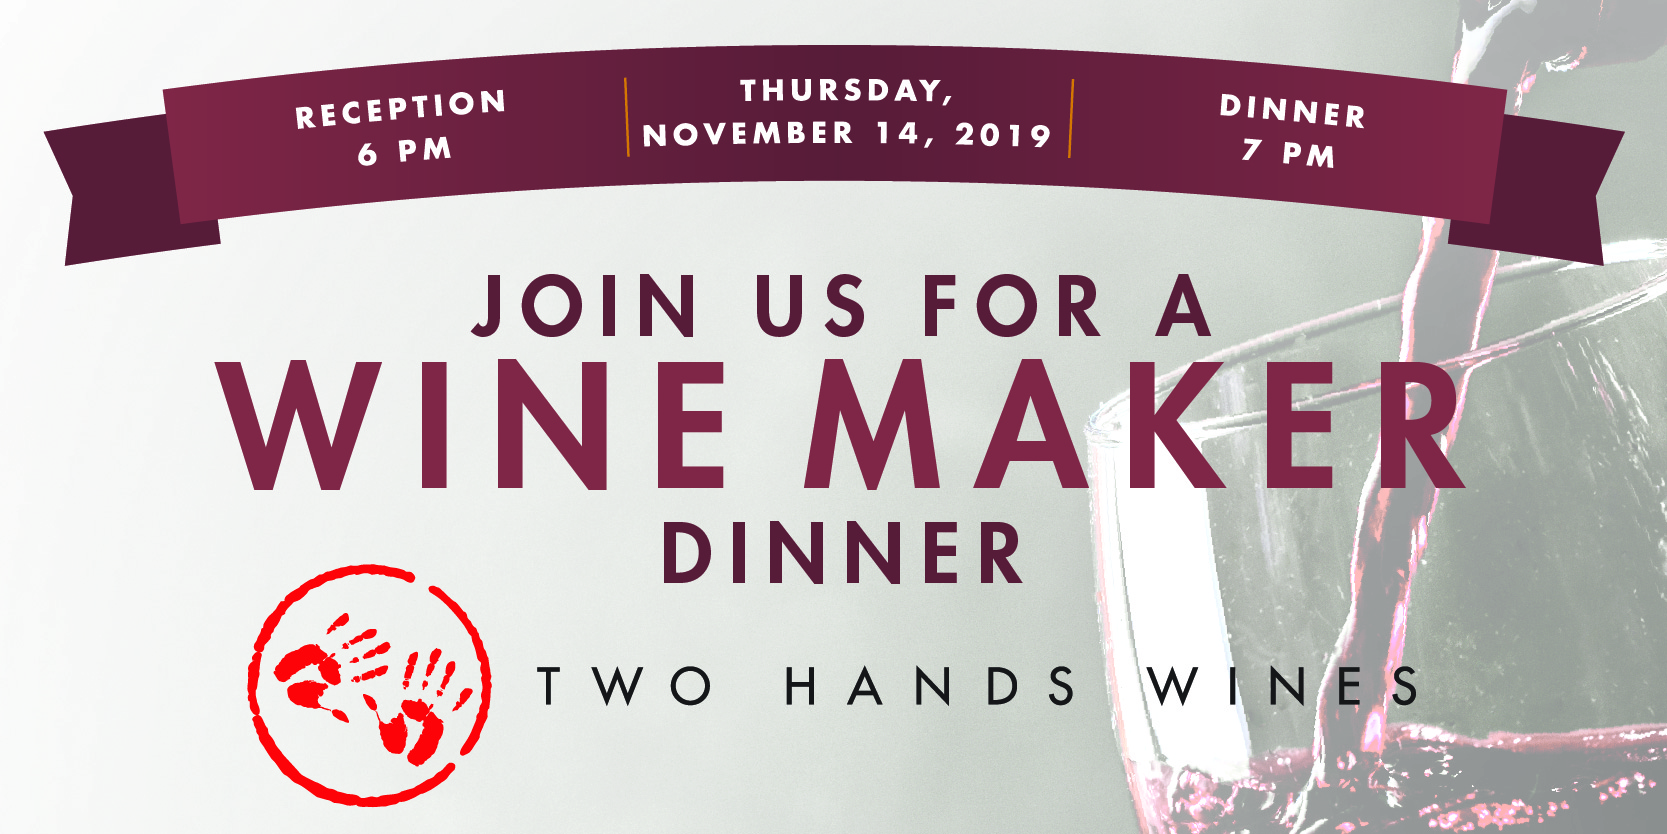 Wine Maker Dinner featuring Two Hands Wines